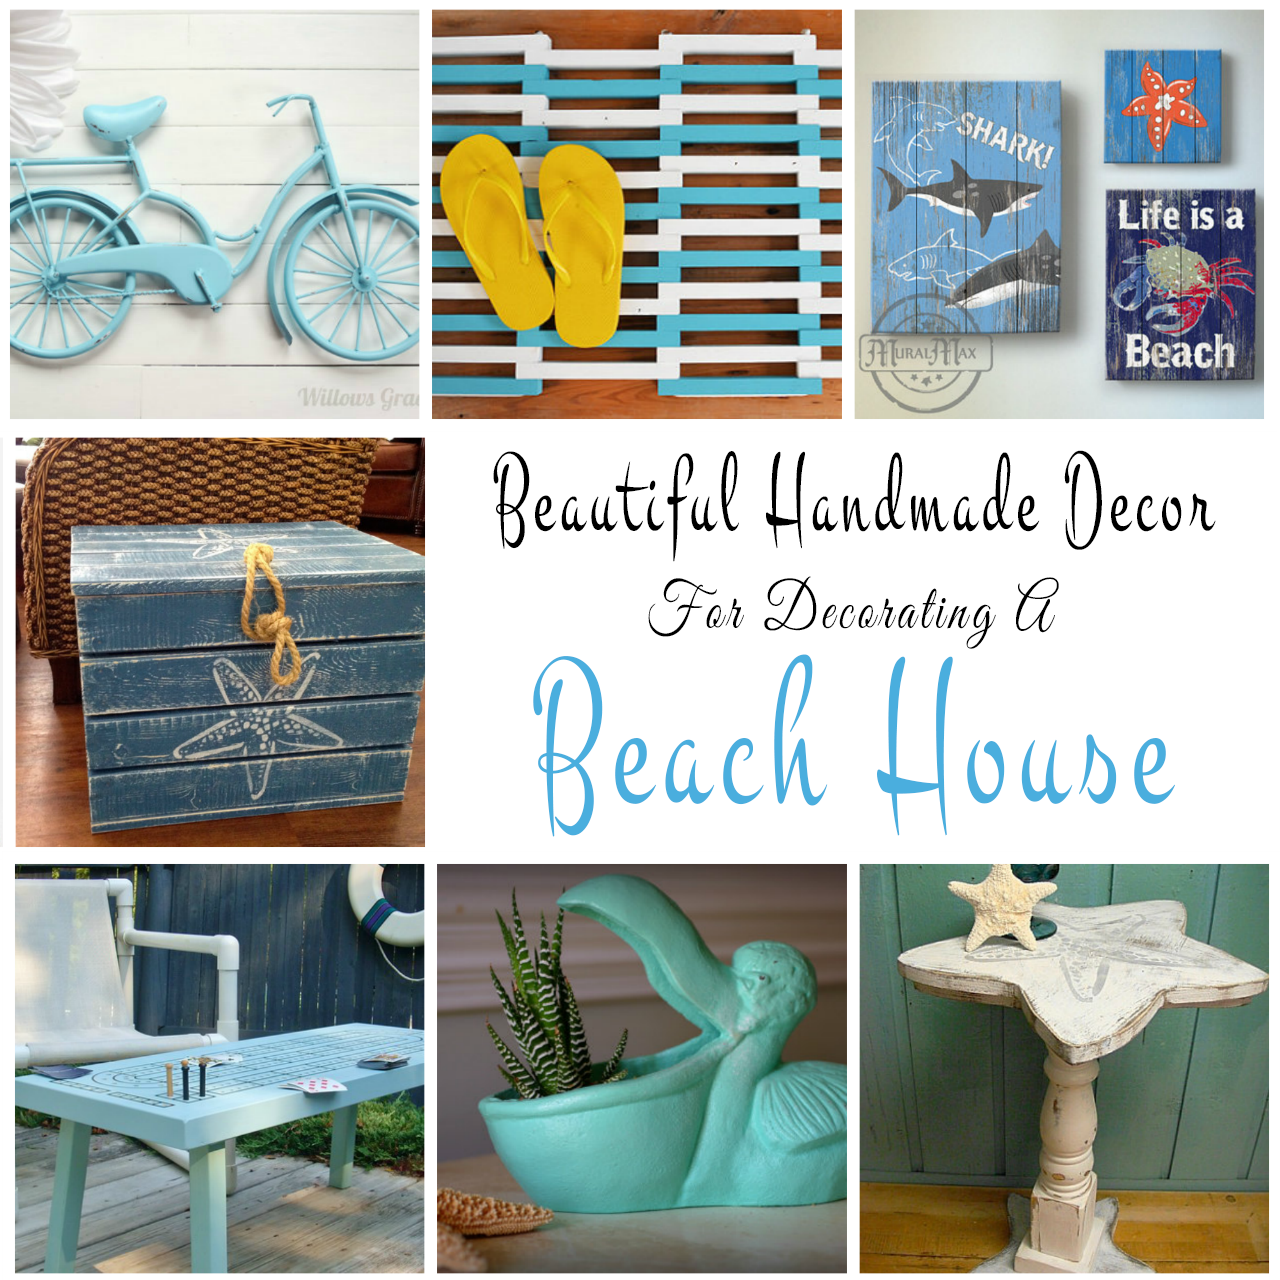 Handmade decor ideas for decorating a beach house for Art for house decoration